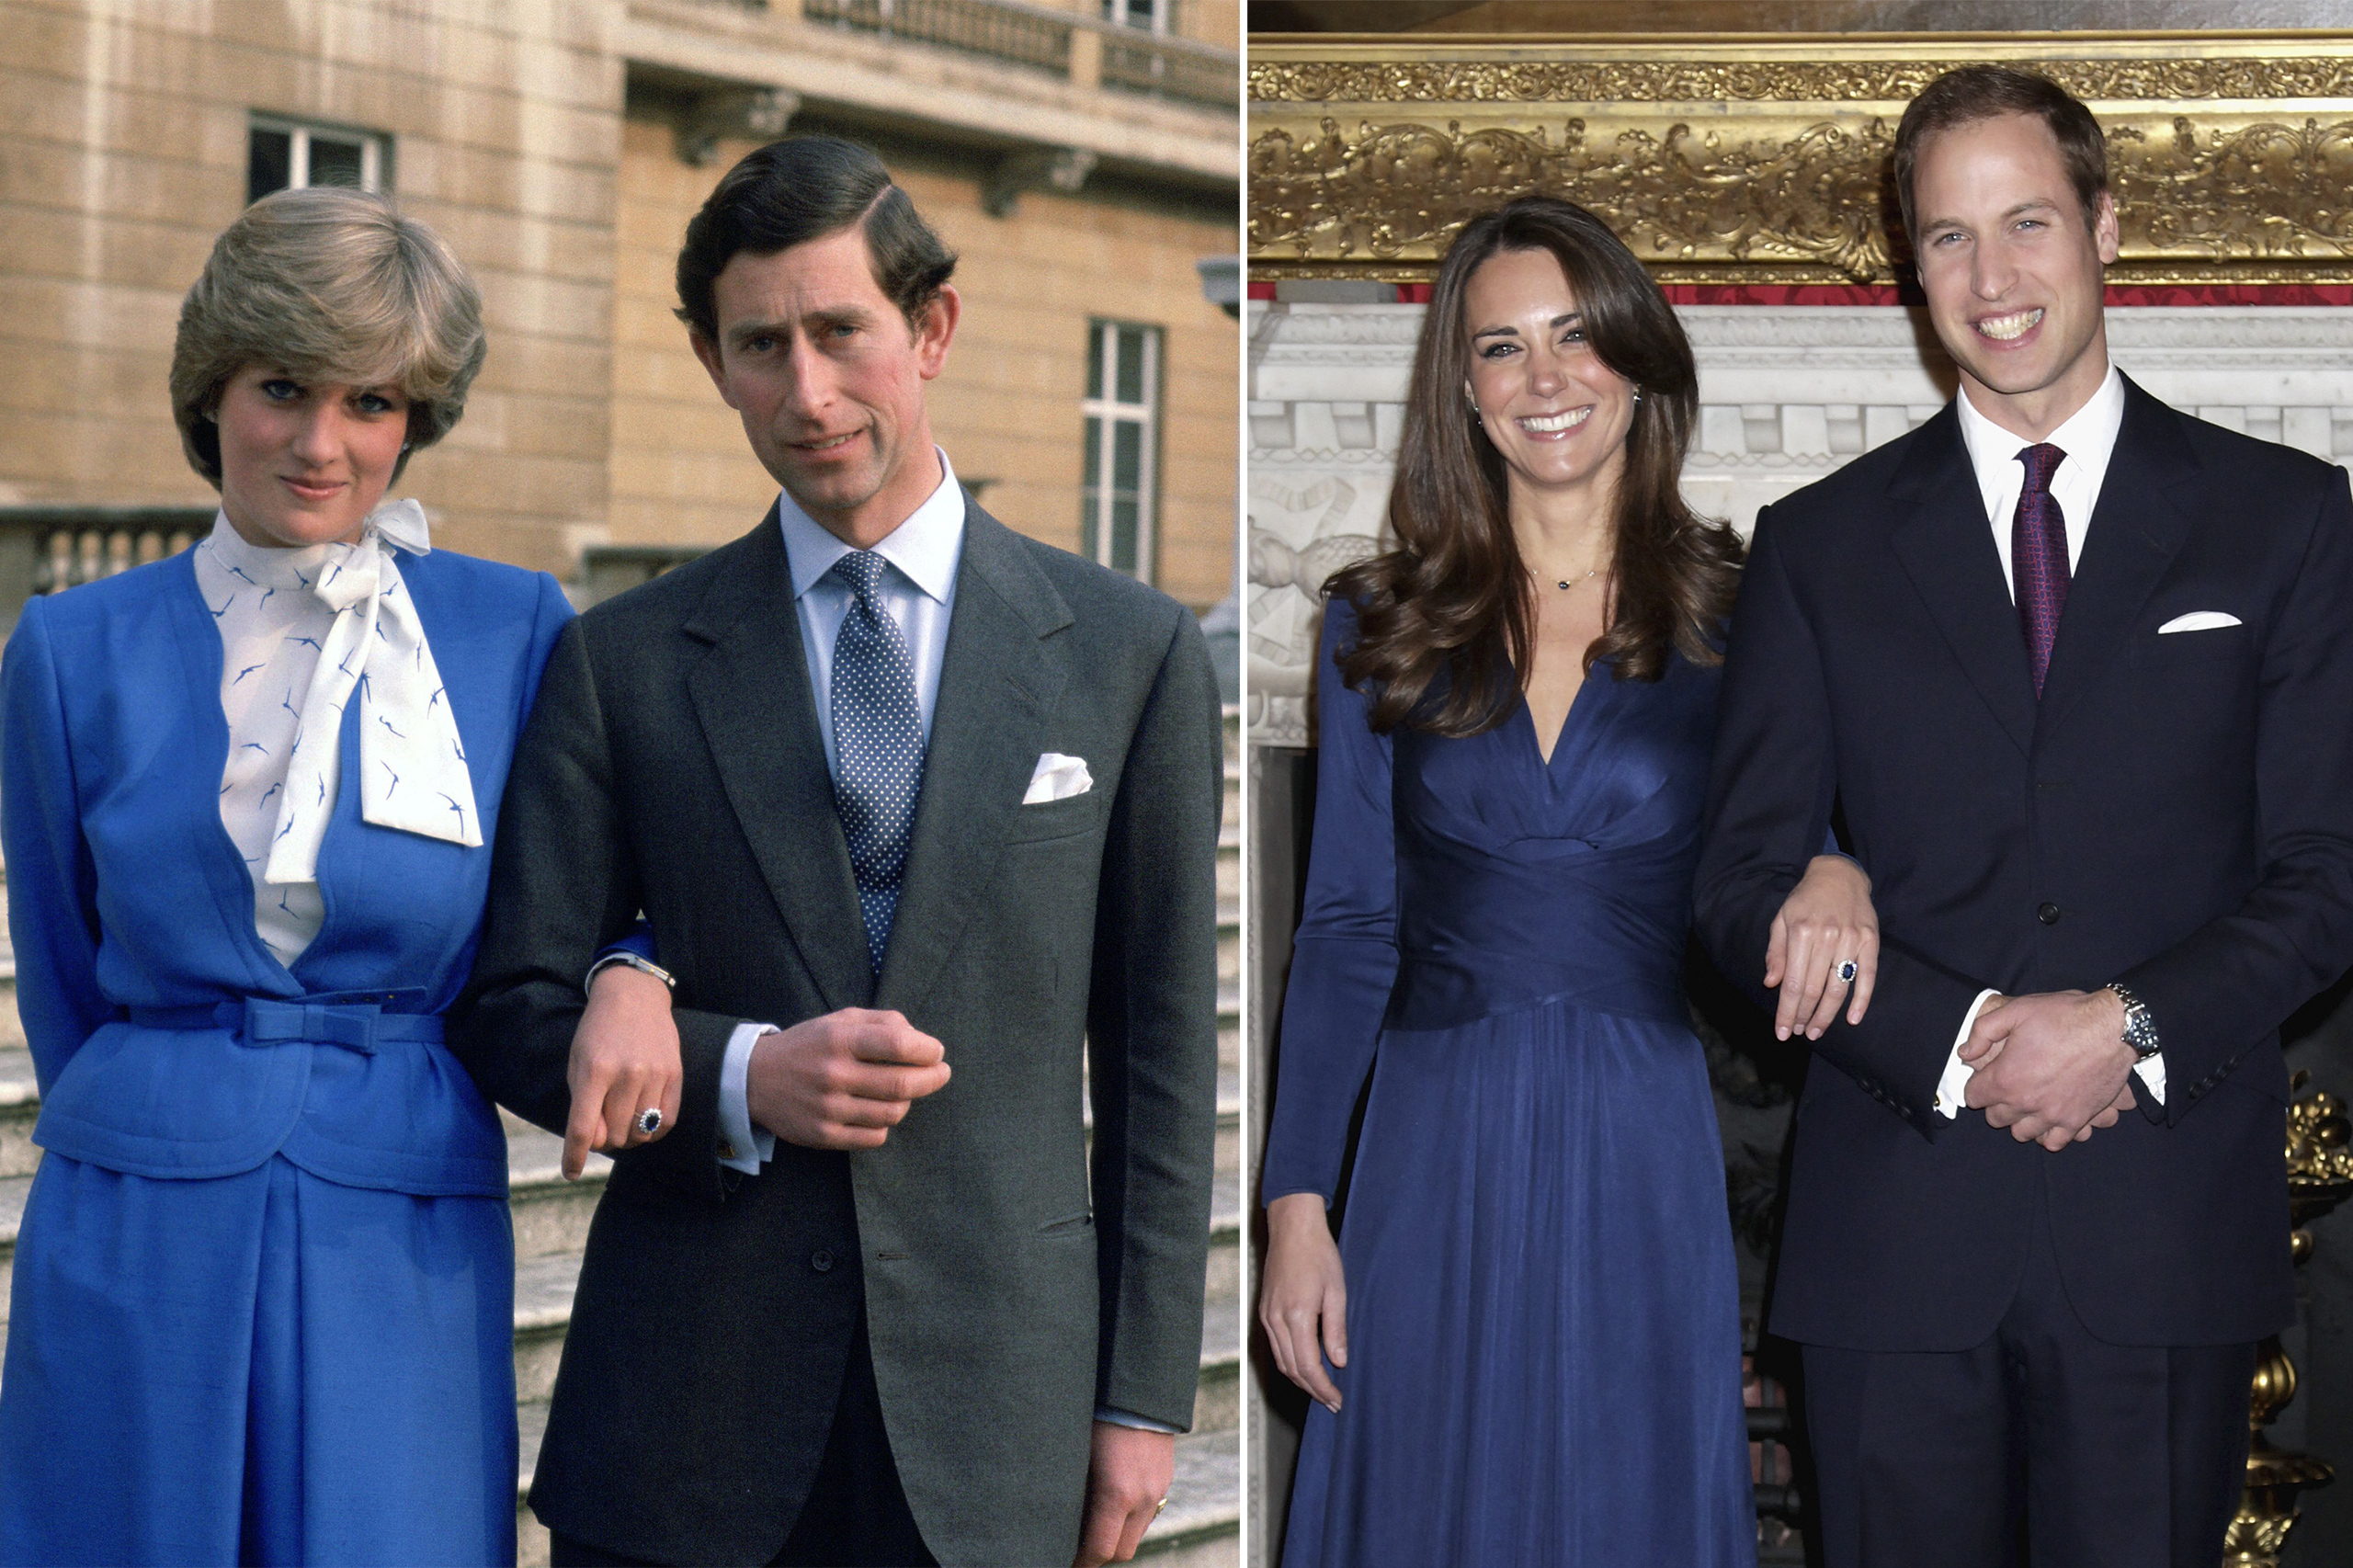 Both Kate and Diana opted for deep blue looks for their official engagement photos, a color choice that complemented the sapphire engagement ring they shared.